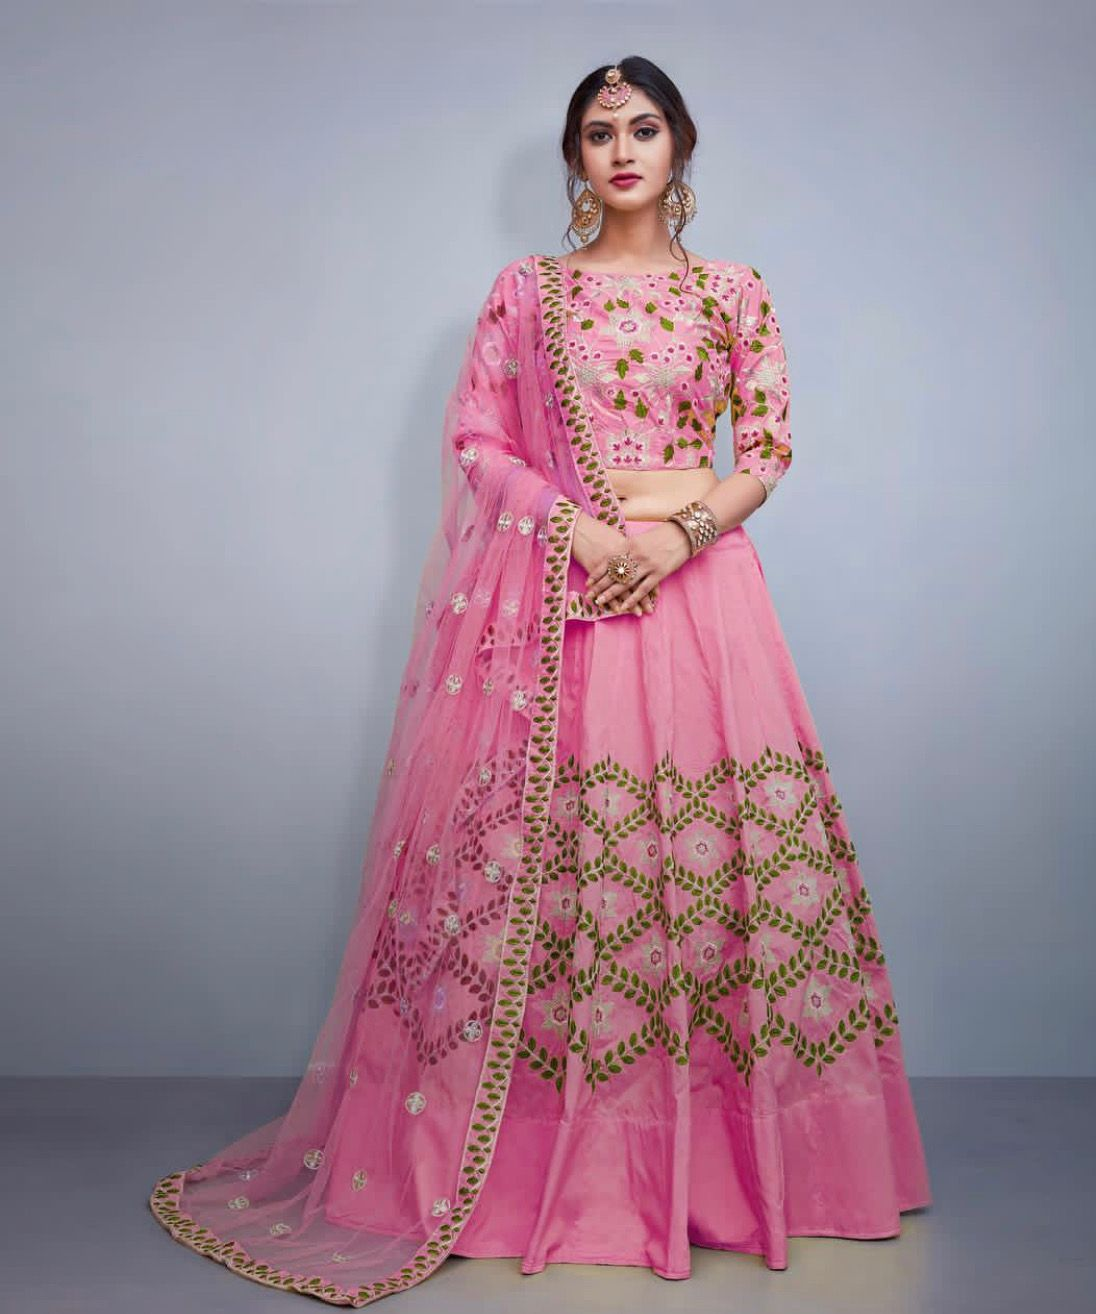 a7f9eb5230 India Emporium is a one stop ethnic wear online store for all your online  saree shopping, designer wear, salwar kameez, bridal wear, lehenga cholis  ...